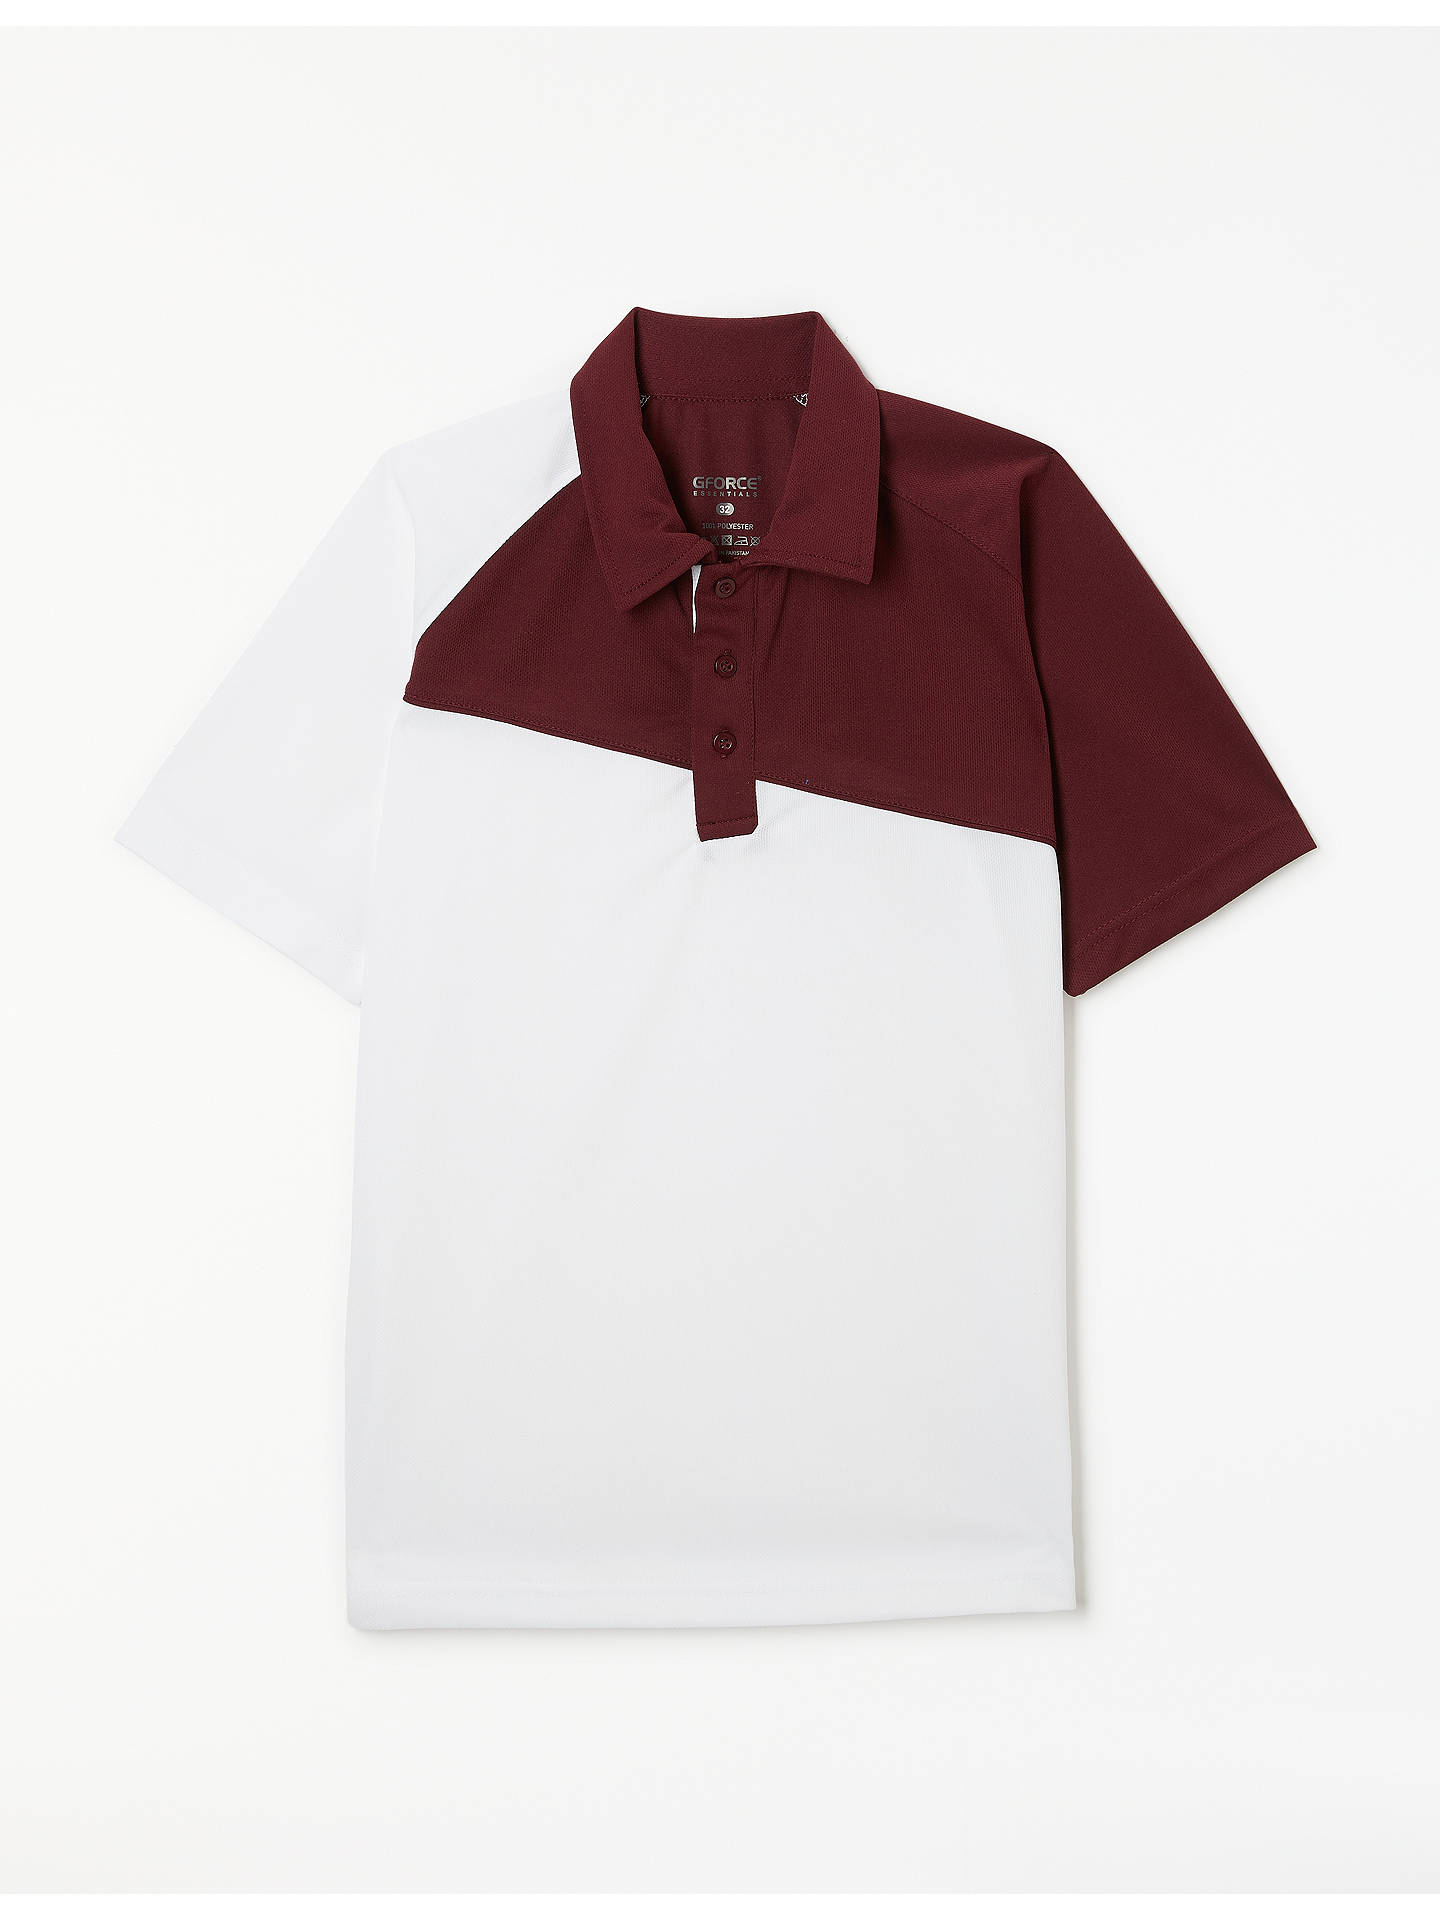 Chigwell School Lambourne House Polo Shirt White With Maroon Panel